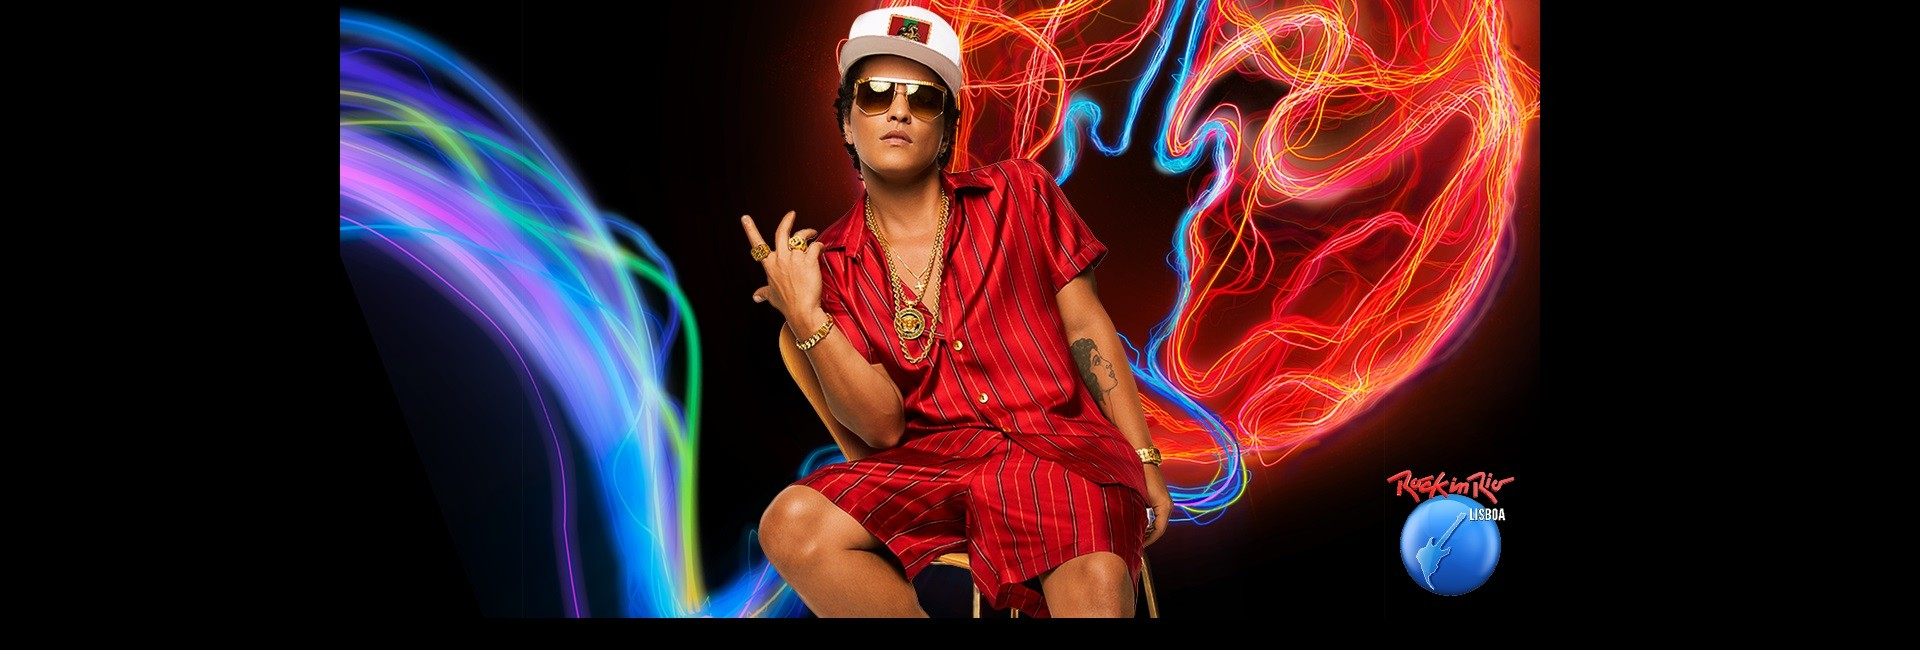 ROCK IN RIO 2018 Bruno Mars